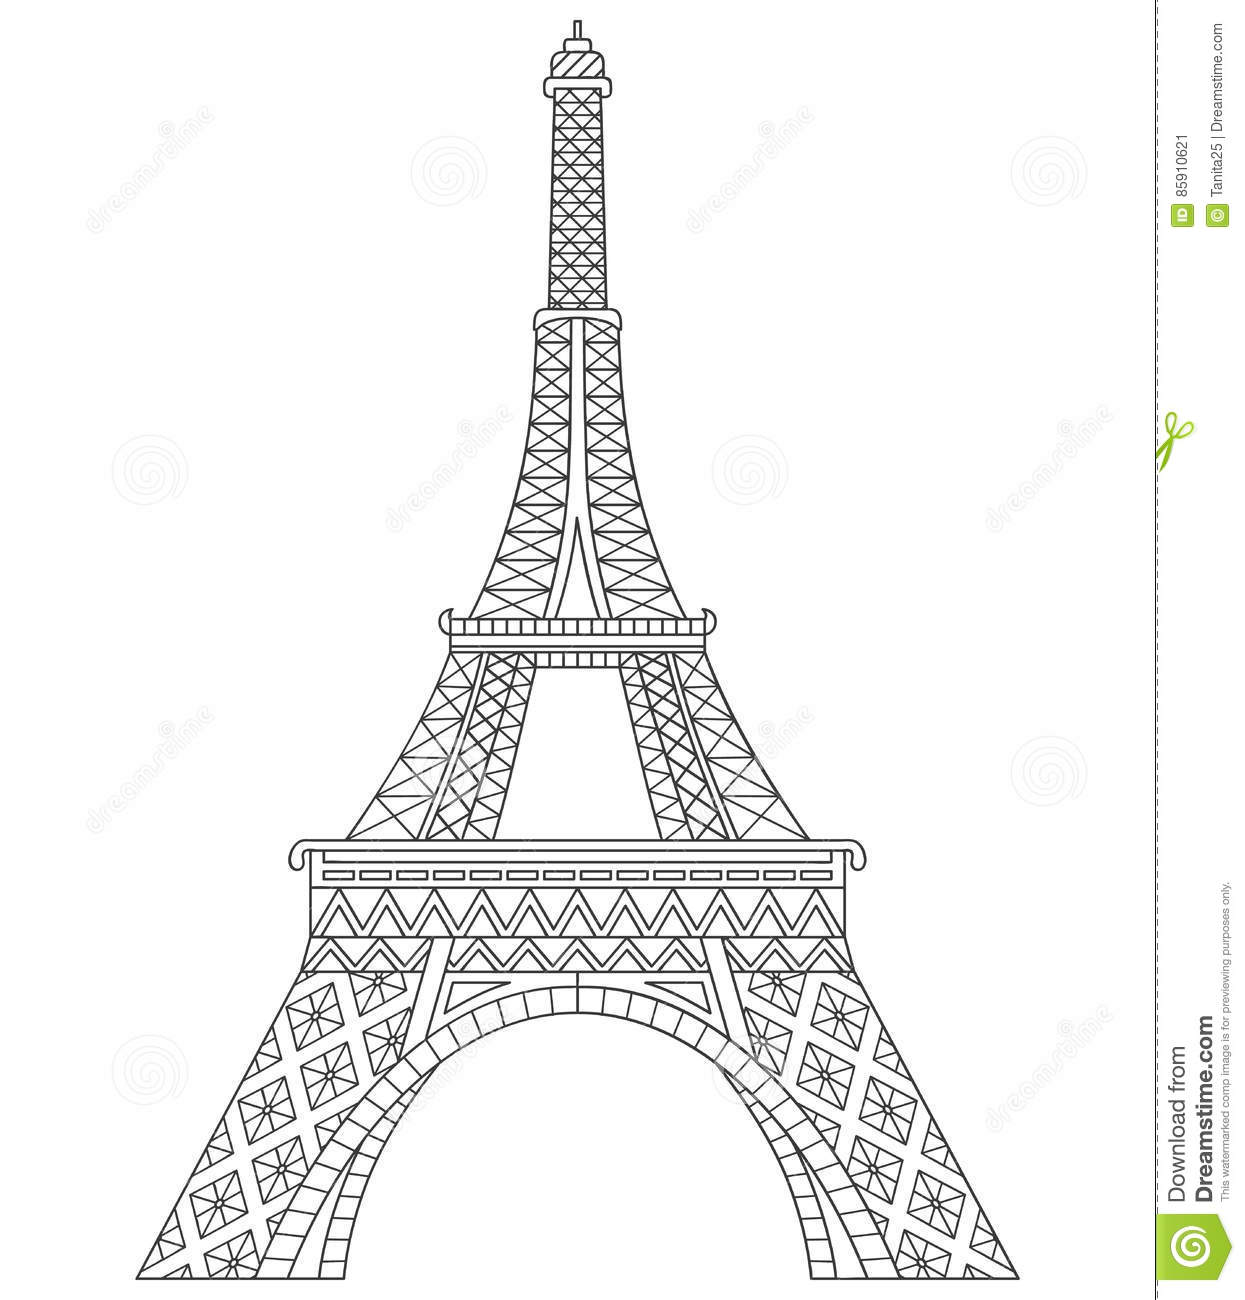 Vector eiffel tower stock vector illustration of graphics 85910621 download vector eiffel tower stock vector illustration of graphics 85910621 thecheapjerseys Gallery